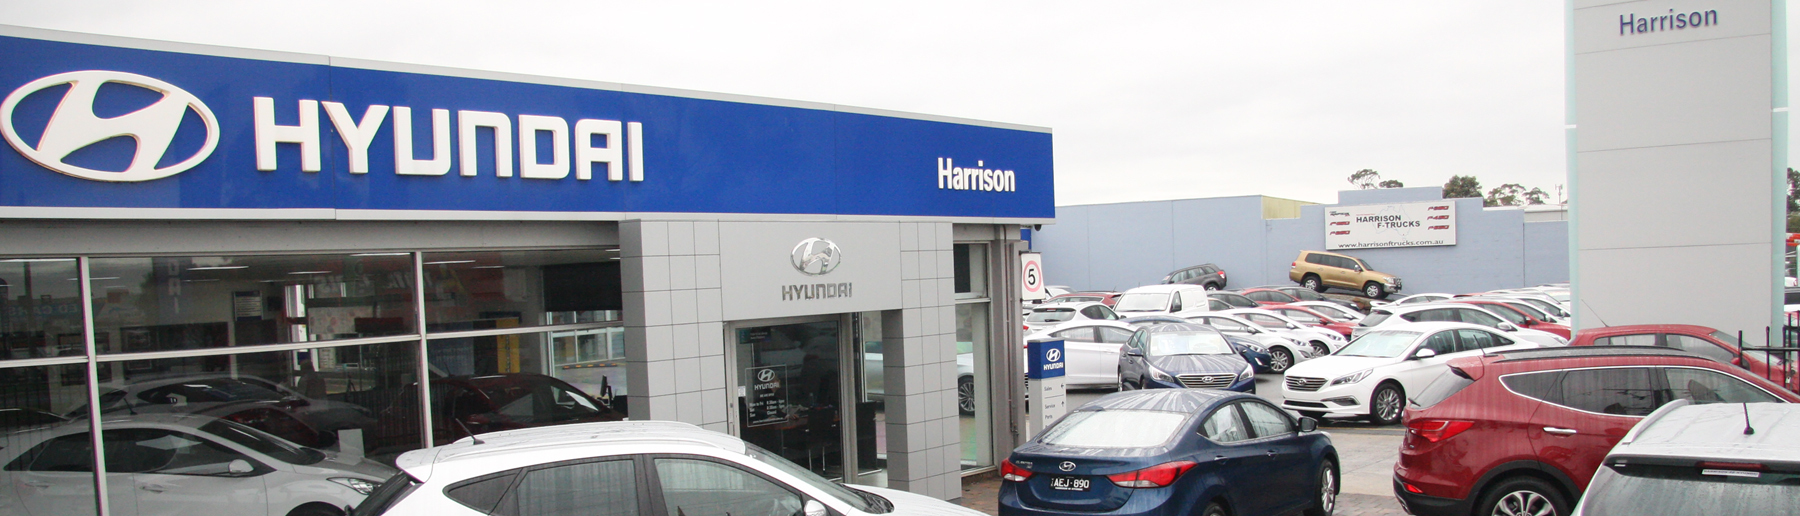 Dealership Image Banner